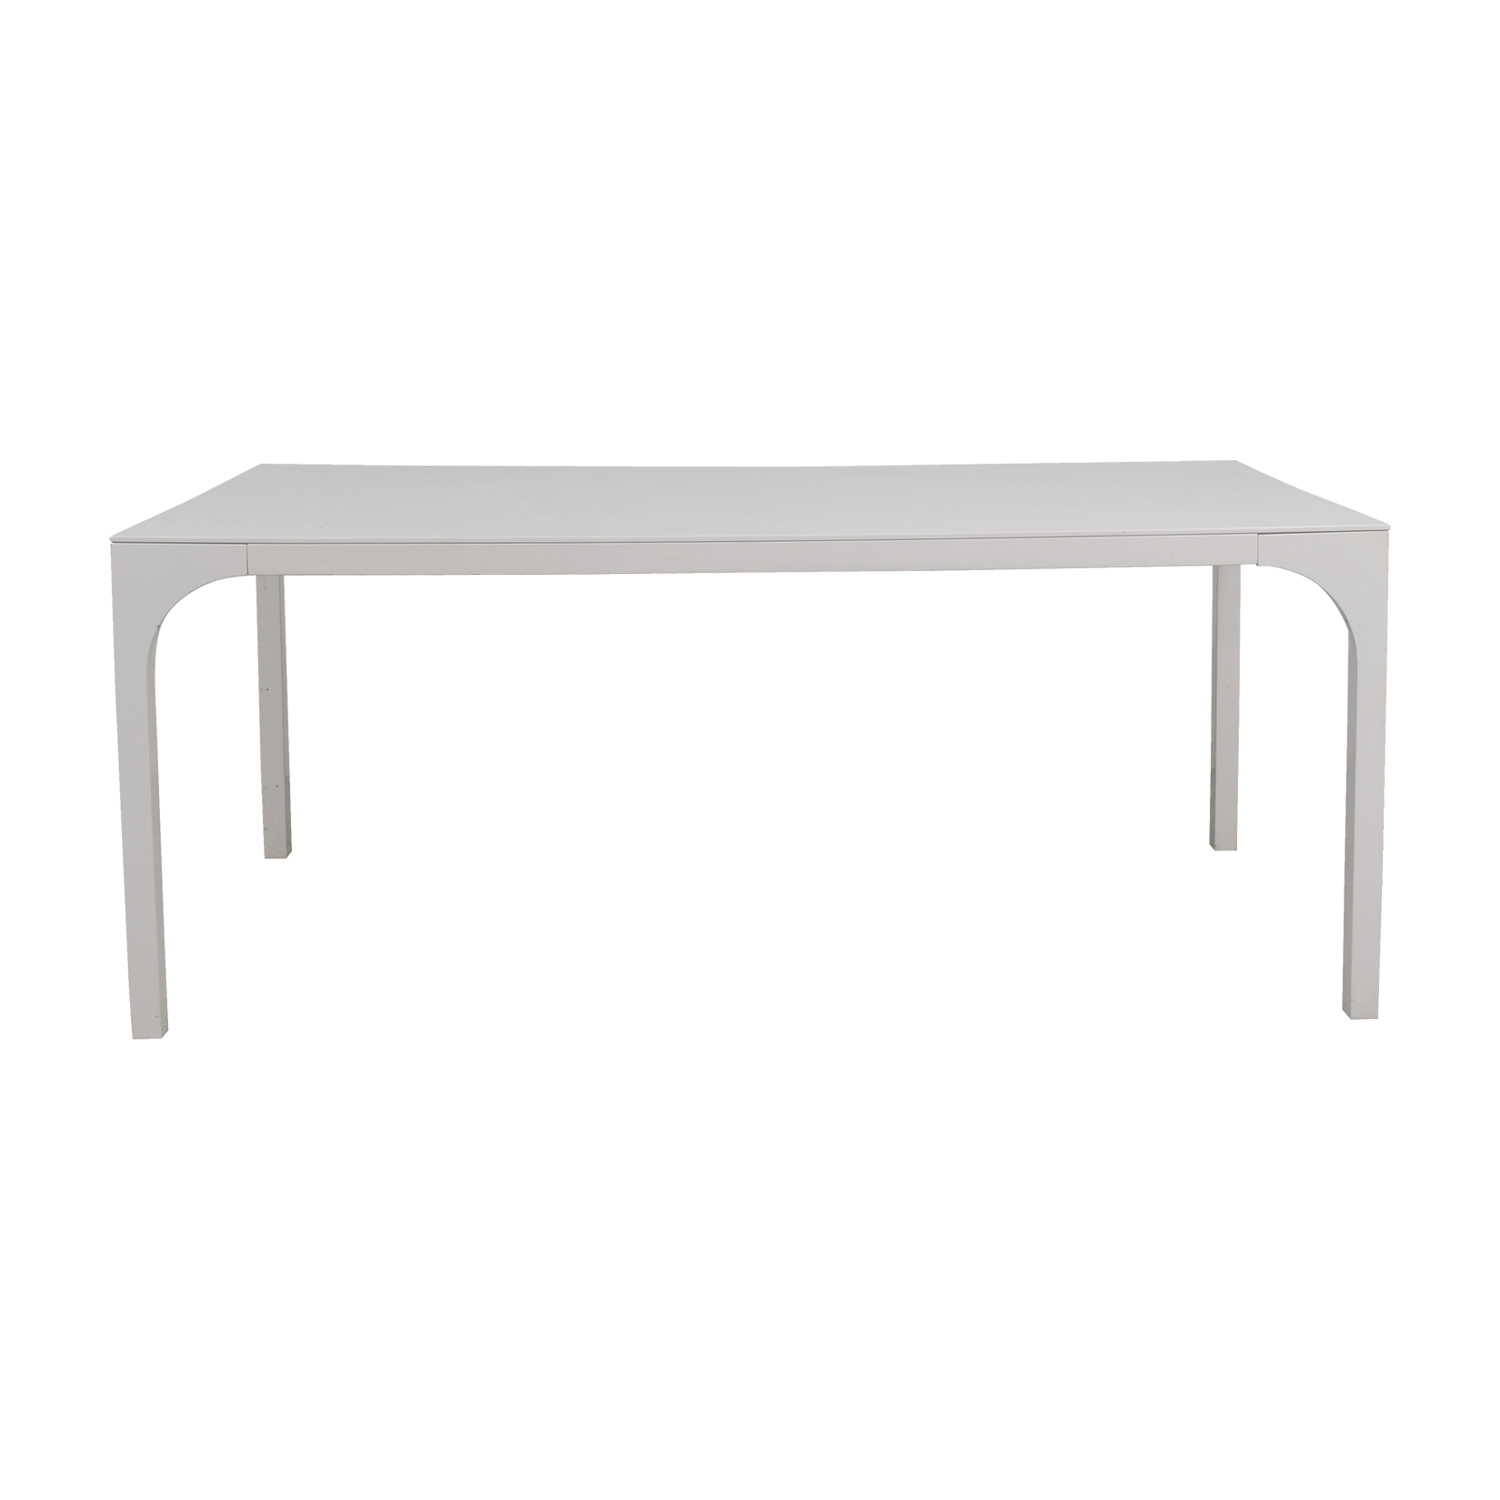 CB2 CB2 Aqua Virgo White Dining Table on sale